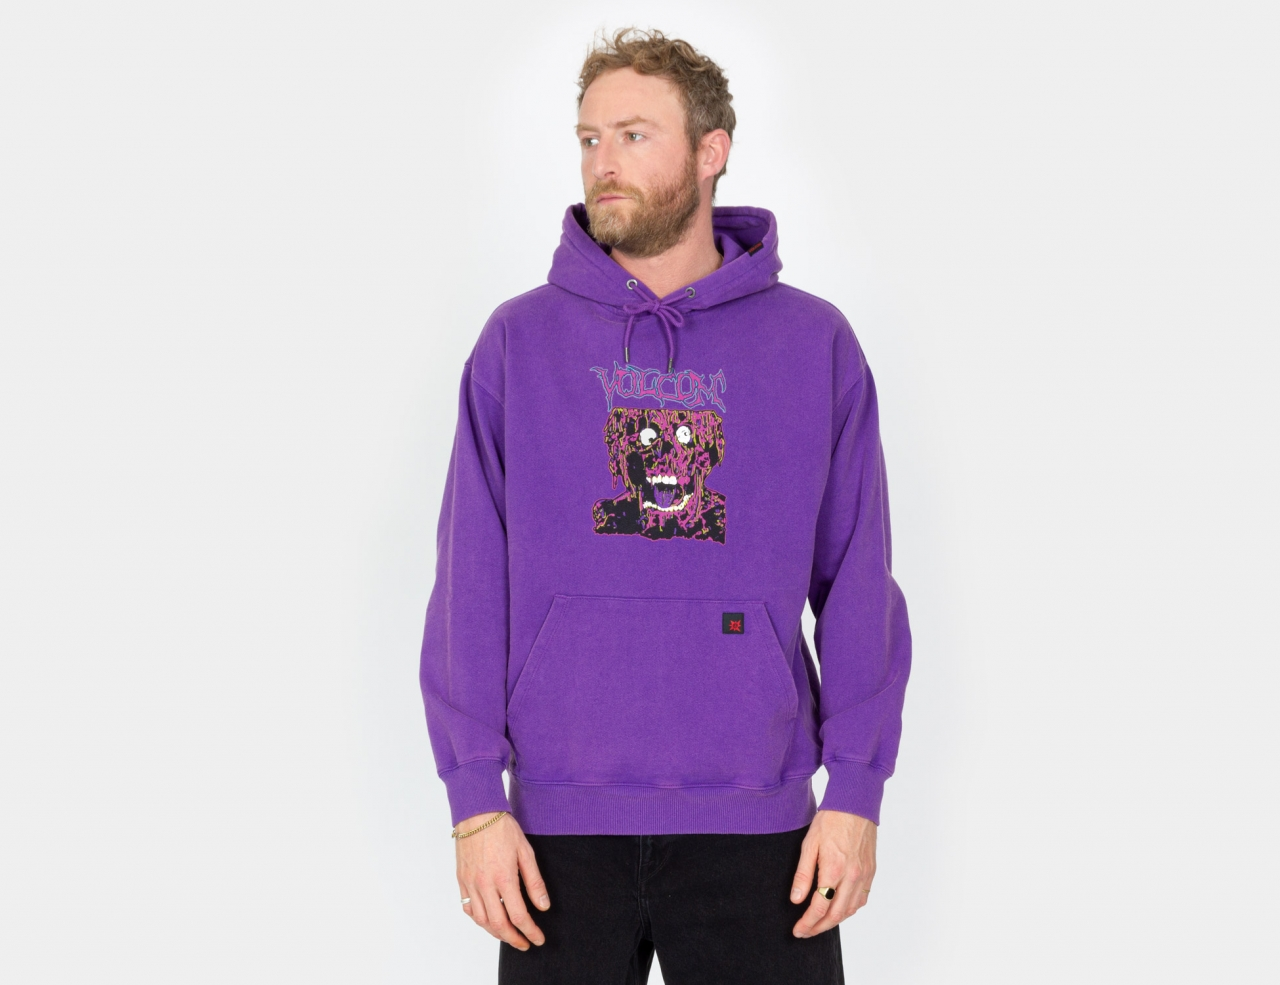 Volcom Something Out There Sweatshirt - Prism Violet